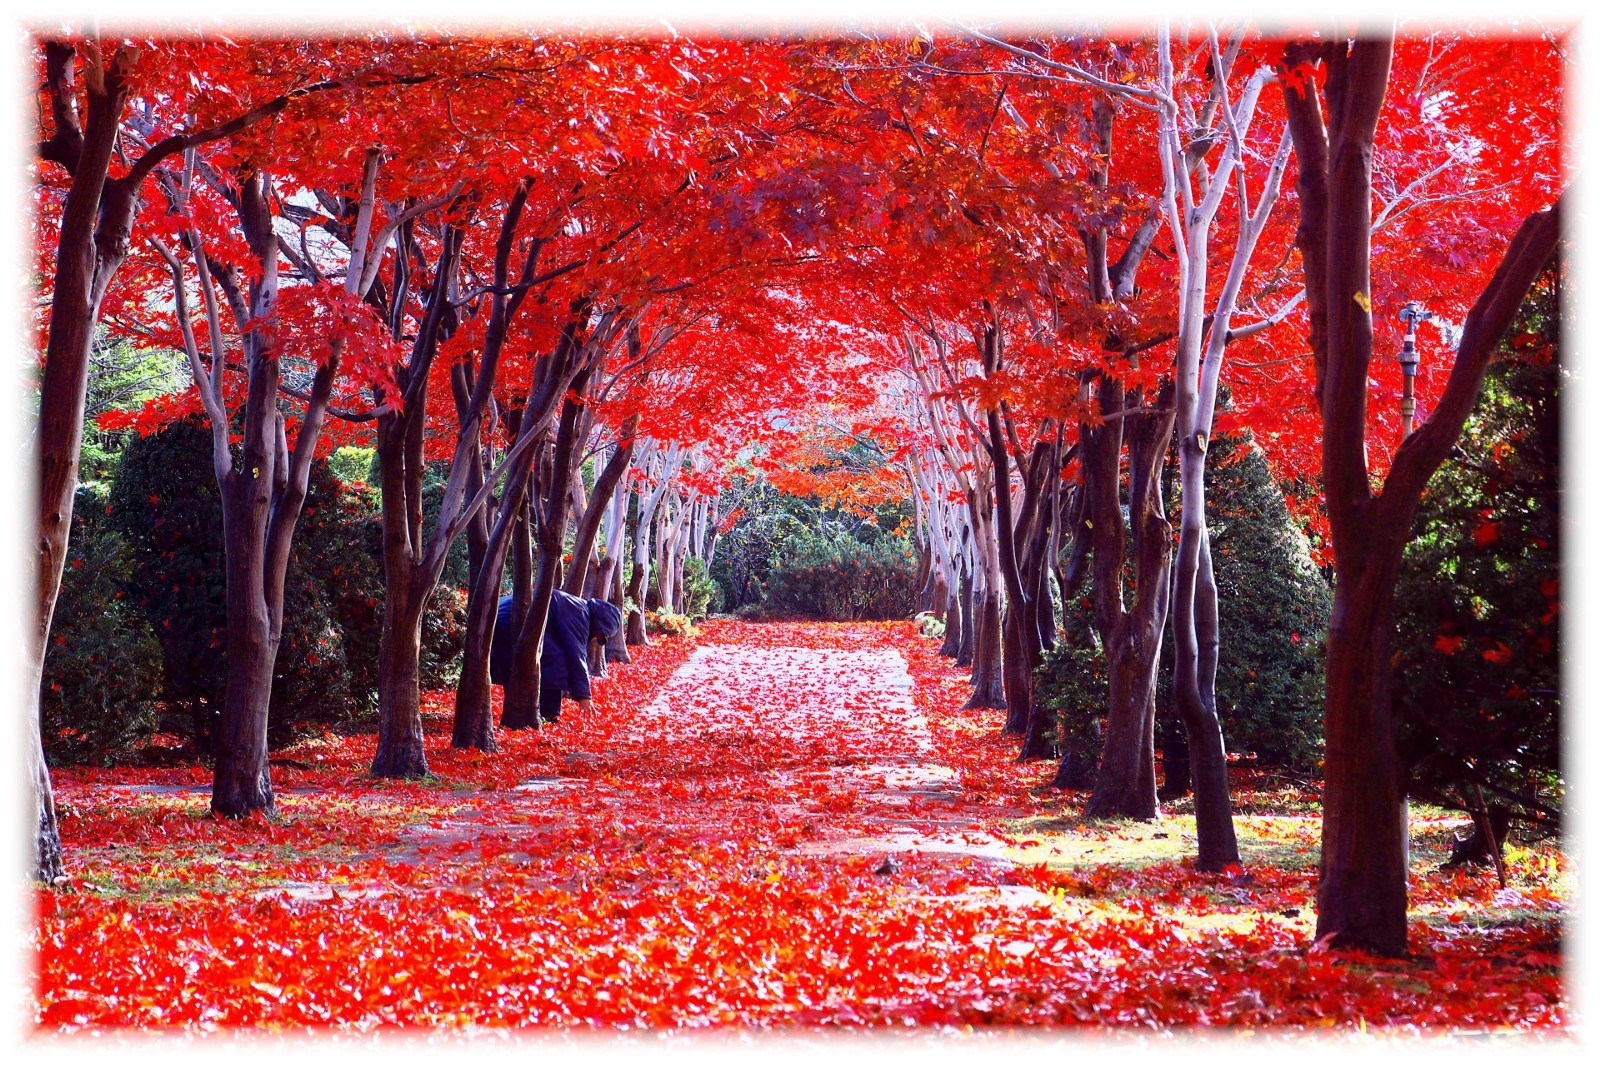 Best Time To Travel To Japan In Fall